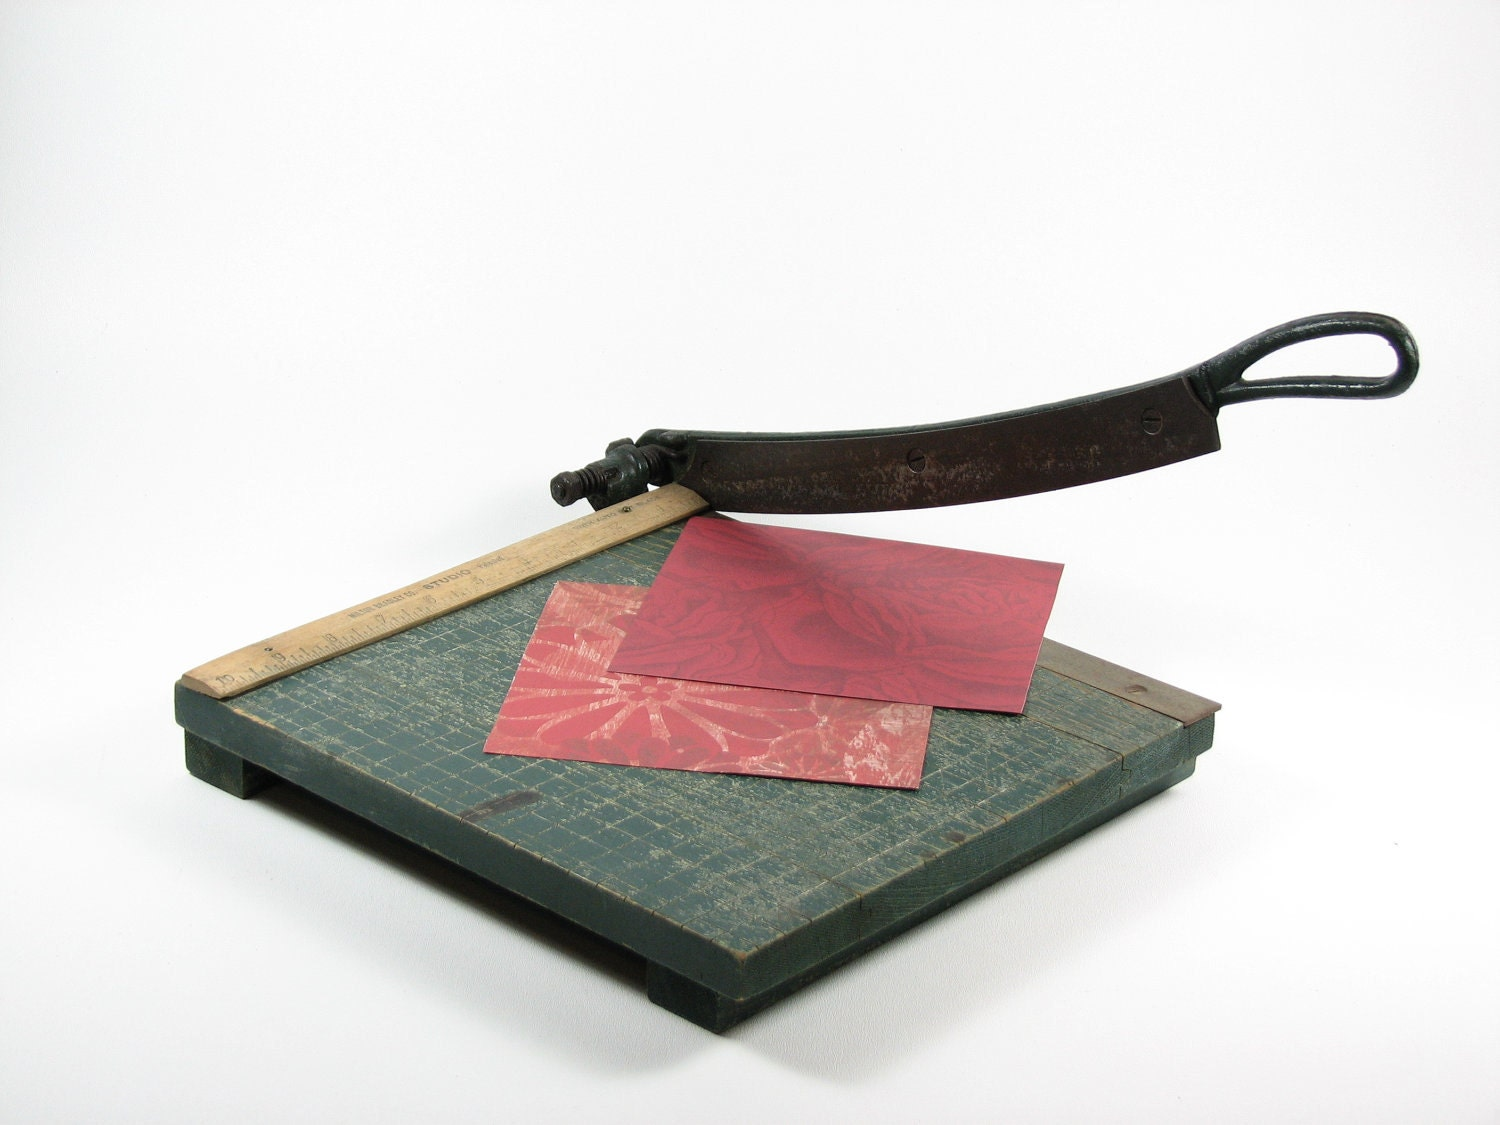 Vintage wood paper cutter craft tool milton by bridgewoodplace for Paper cutter for crafts